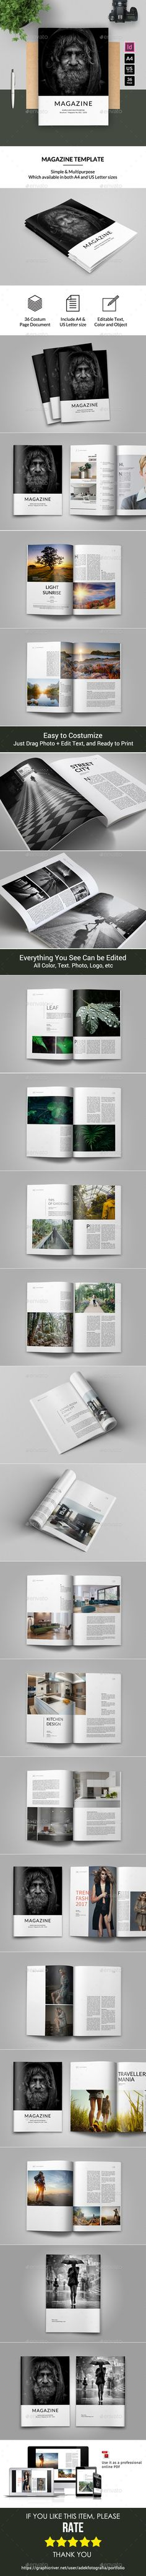 Magazine Template - Magazines Print Templates Download here : https://graphicriver.net/item/magazine-template/19696864?s_rank=13&ref=Al-fatih